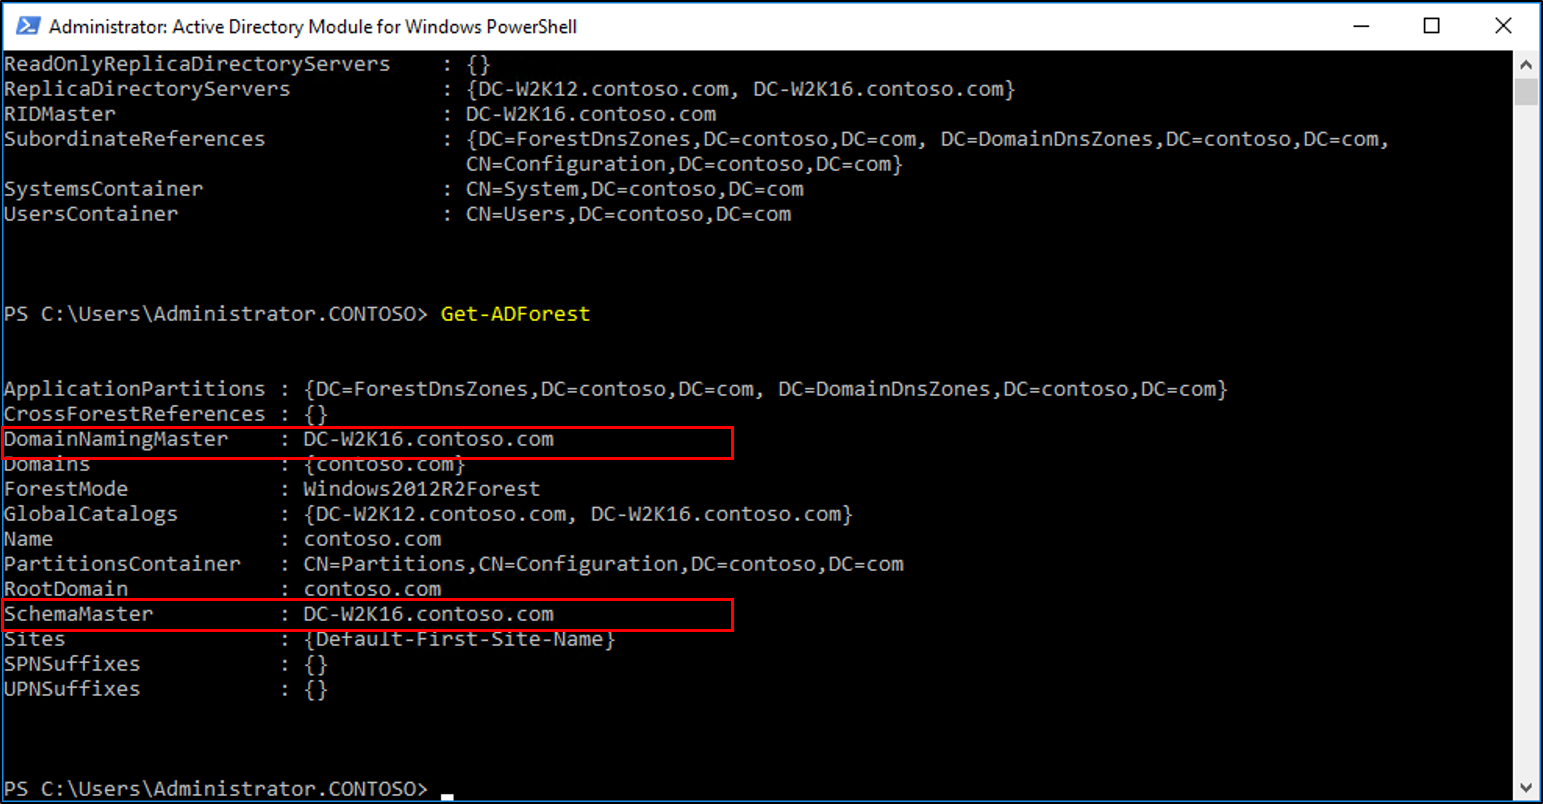 Screenshot of the Active Directory Module for Windows PowerShell window showing the results of the Get-ADForest cmdlet with the Domain Naming Master and Schema Master values called out.